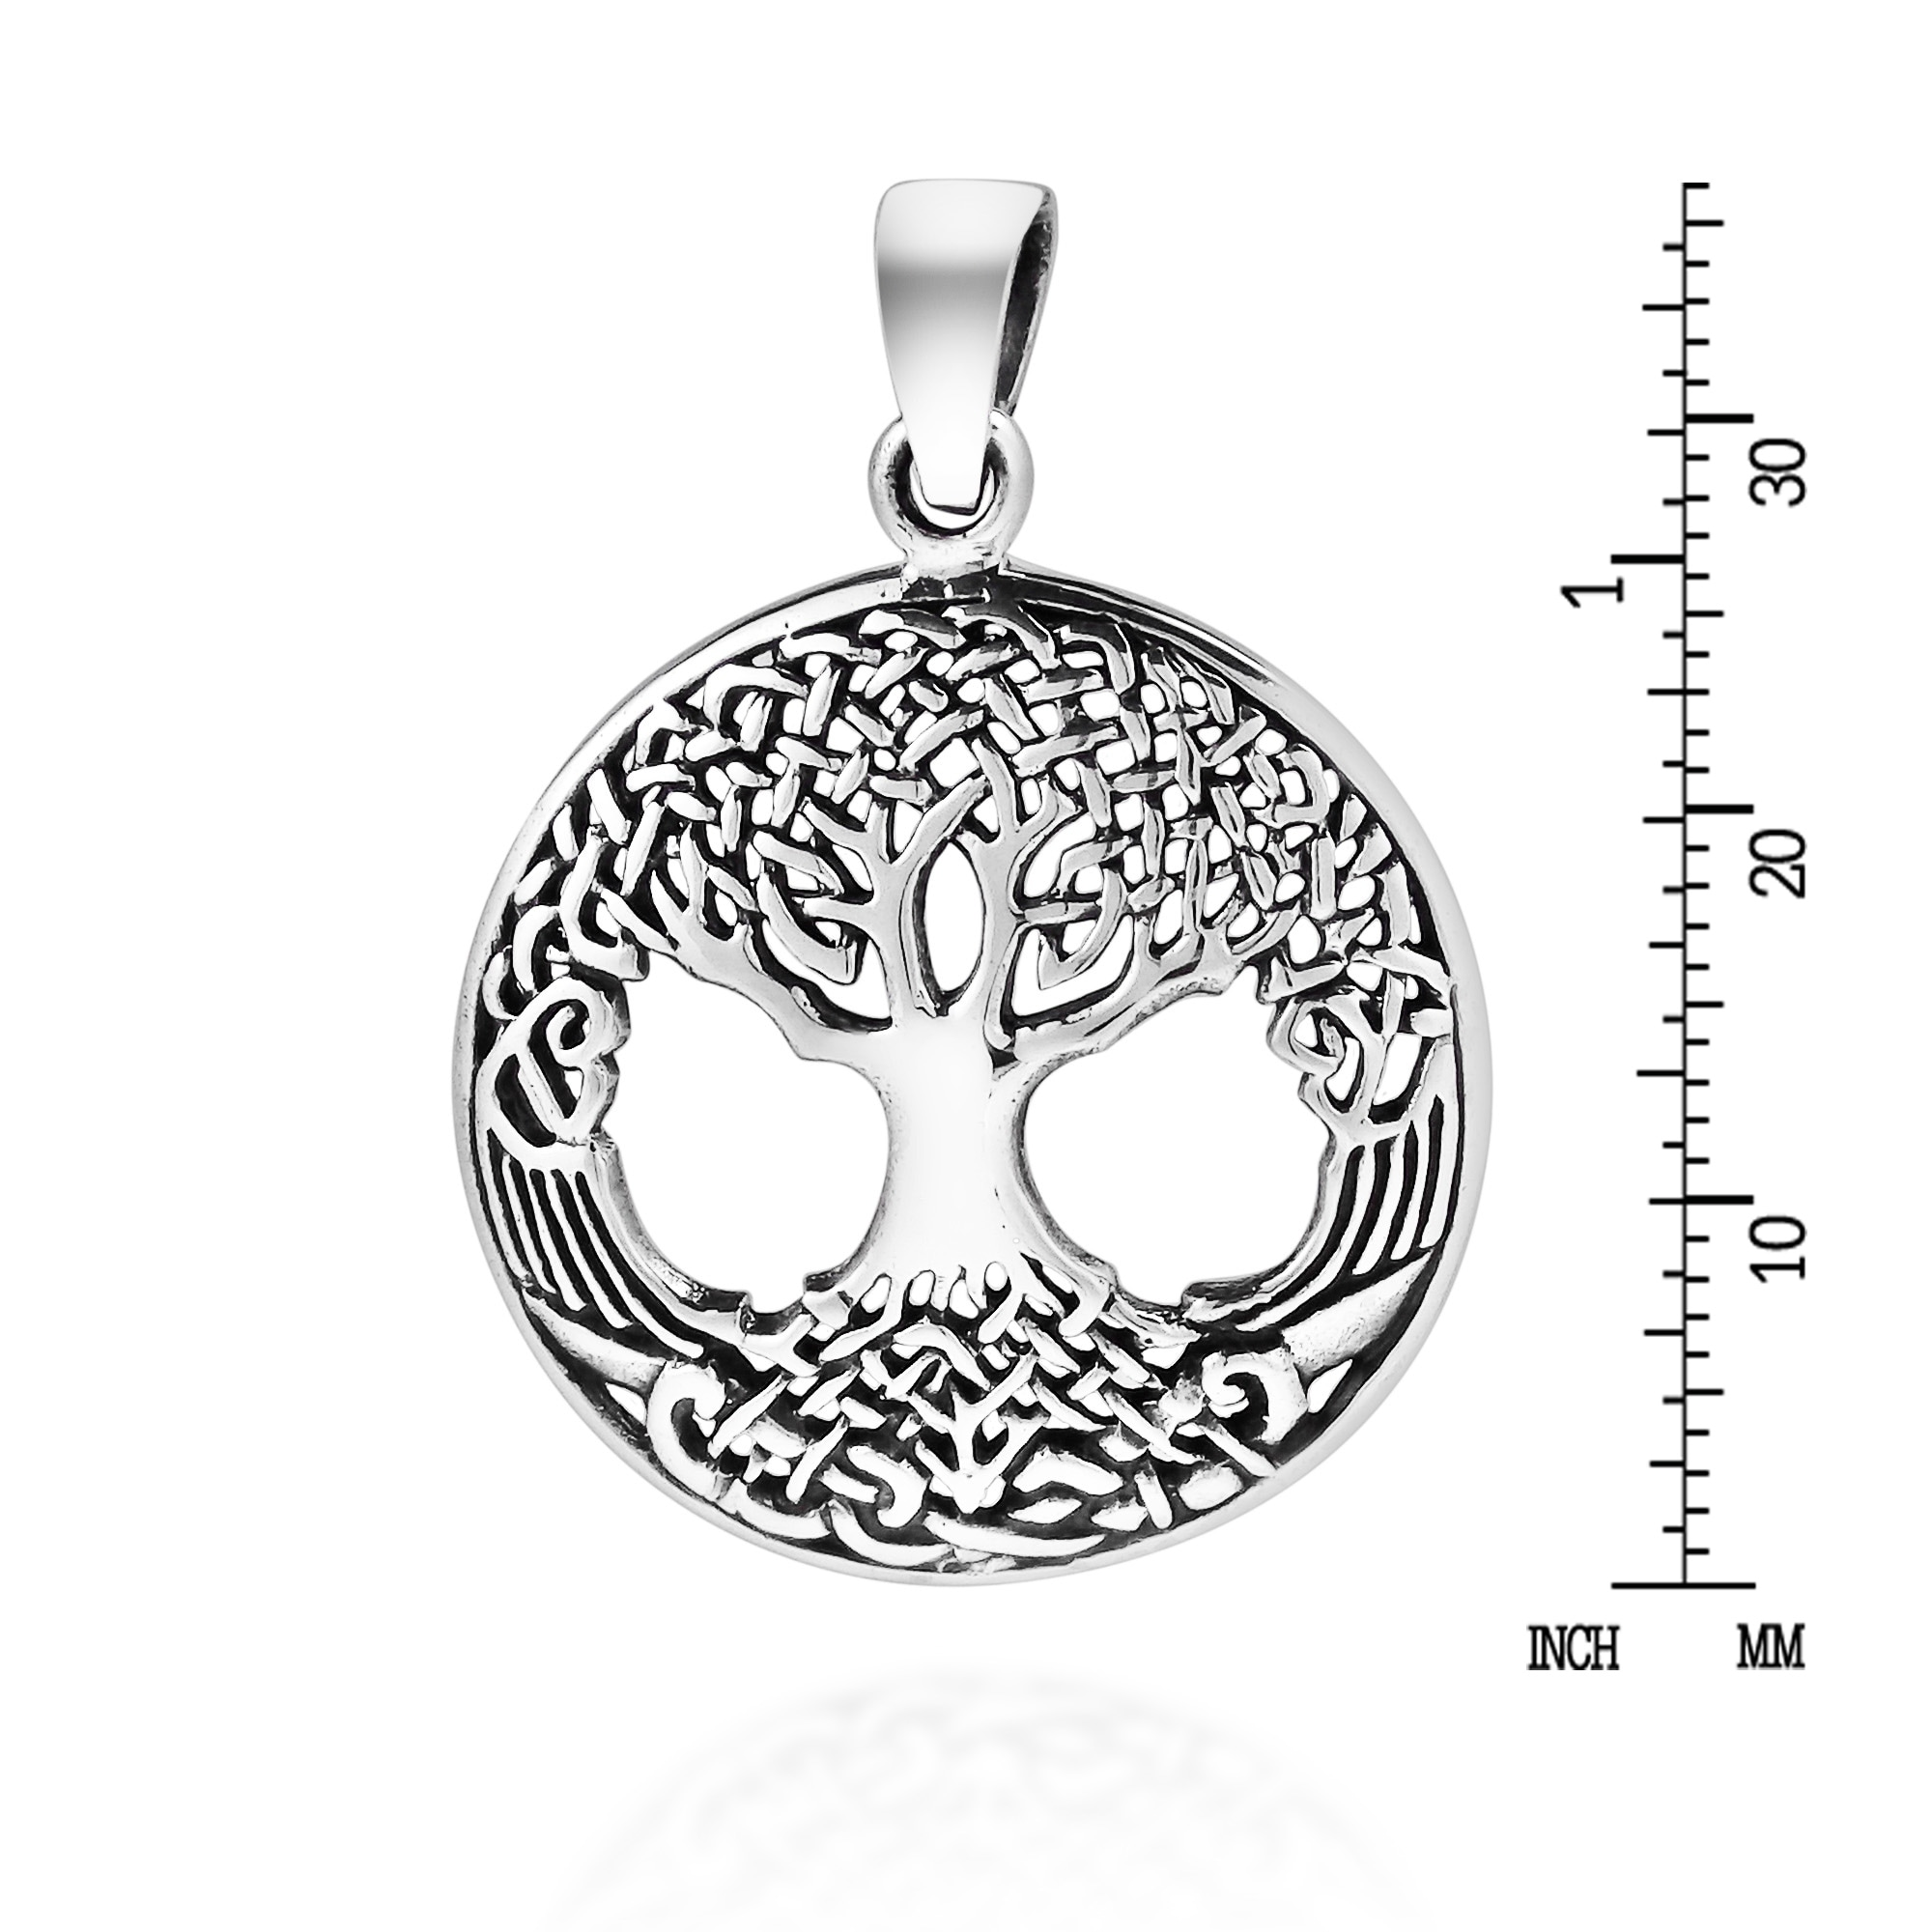 a necklace sterling and angel focus wing b pendant silver celtic result in jewellery gift is irish chain web made unique products ireland